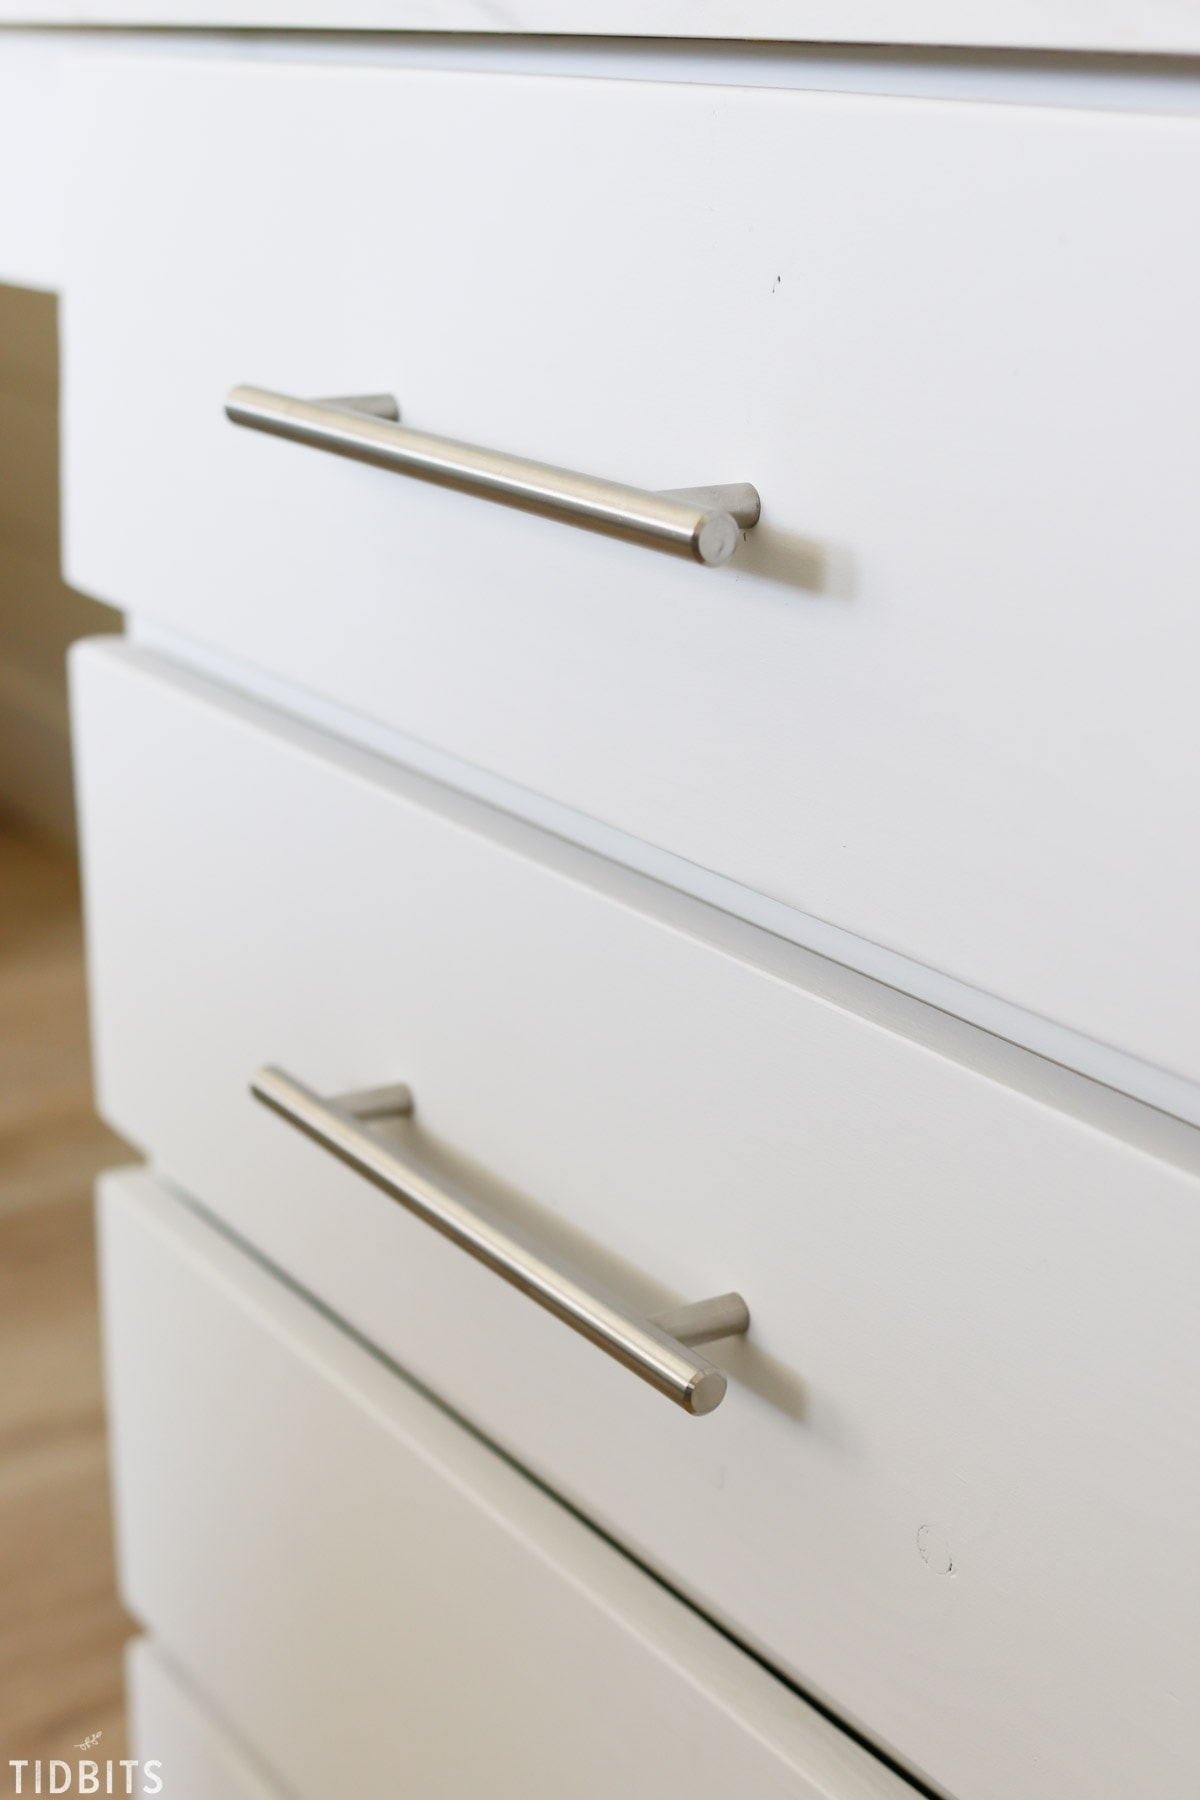 How to Install Cabinet Hardware - Tidbits